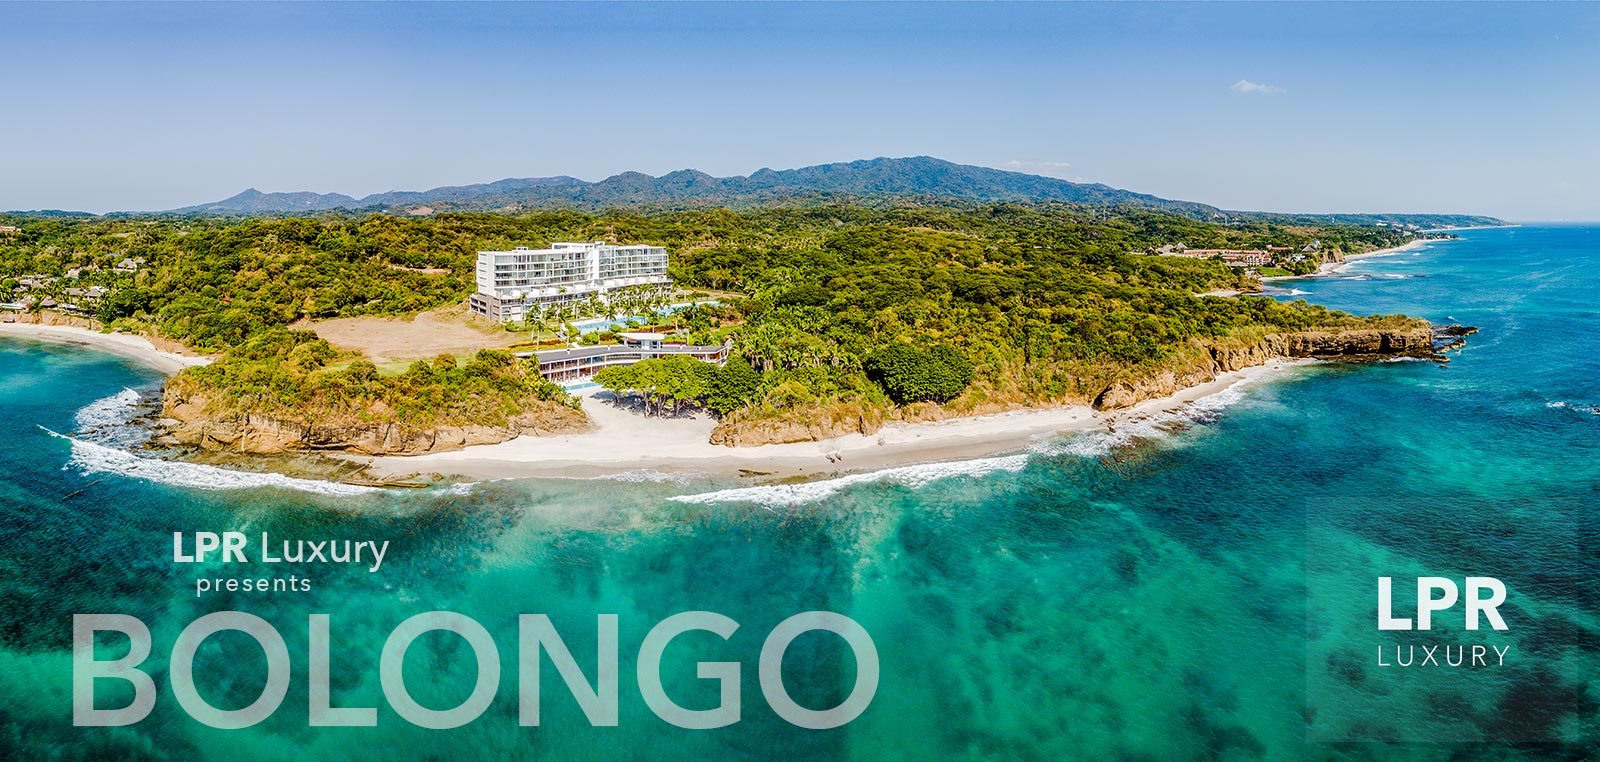 Bolongo - Punta de Mita luxury condos and villas - North Shore Puerto Vallarta